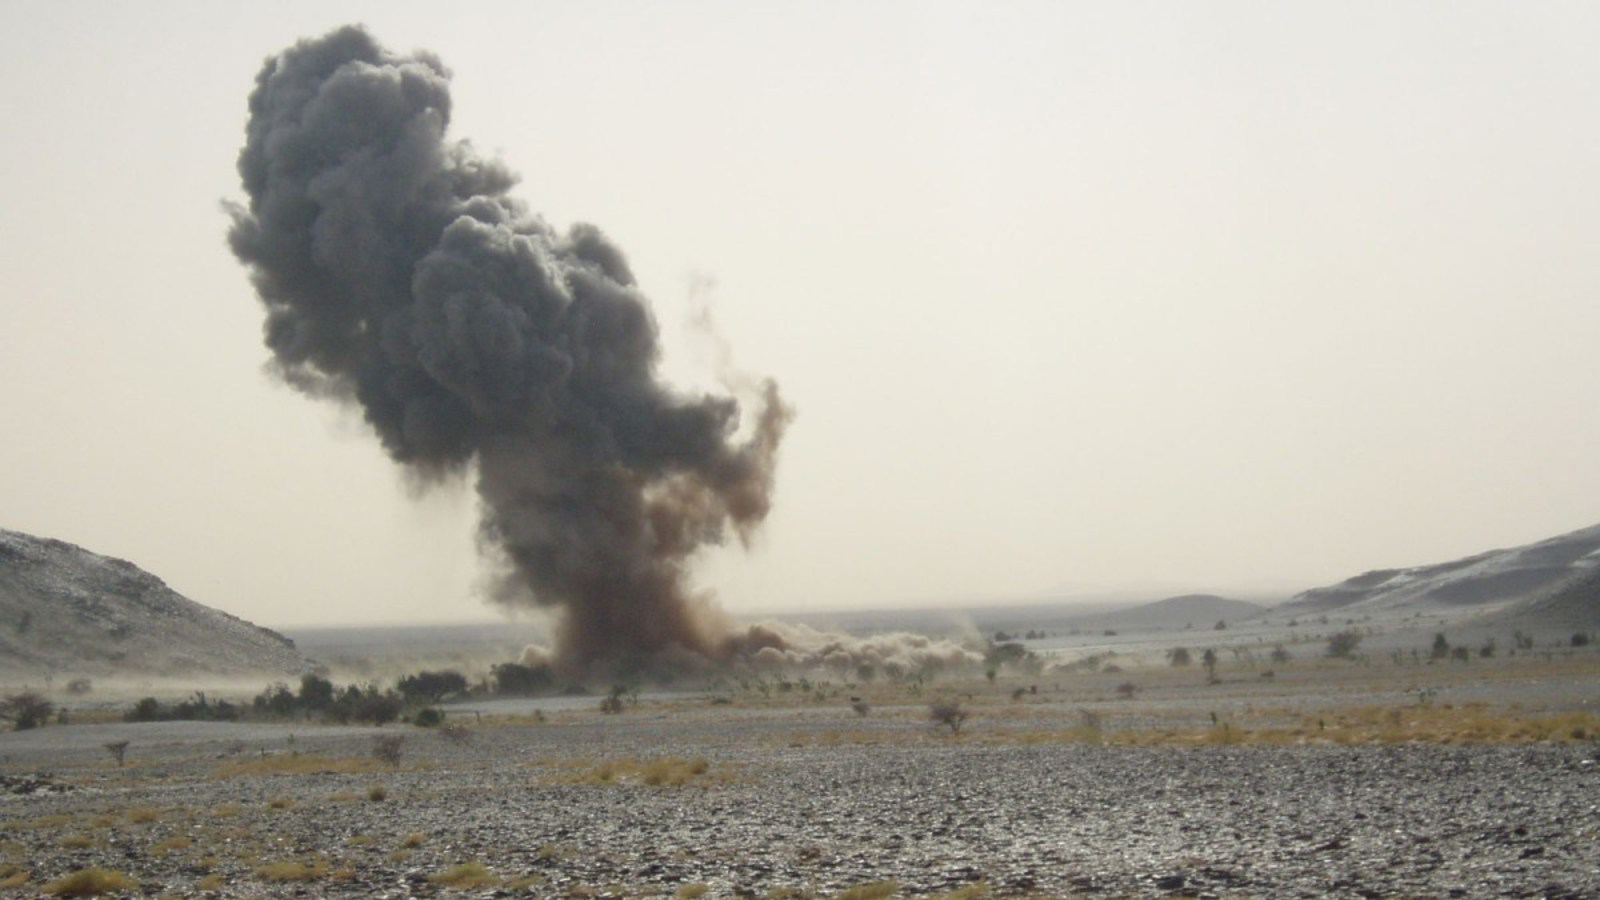 cloud-of-smoke-from-explosion-in-Mauritania